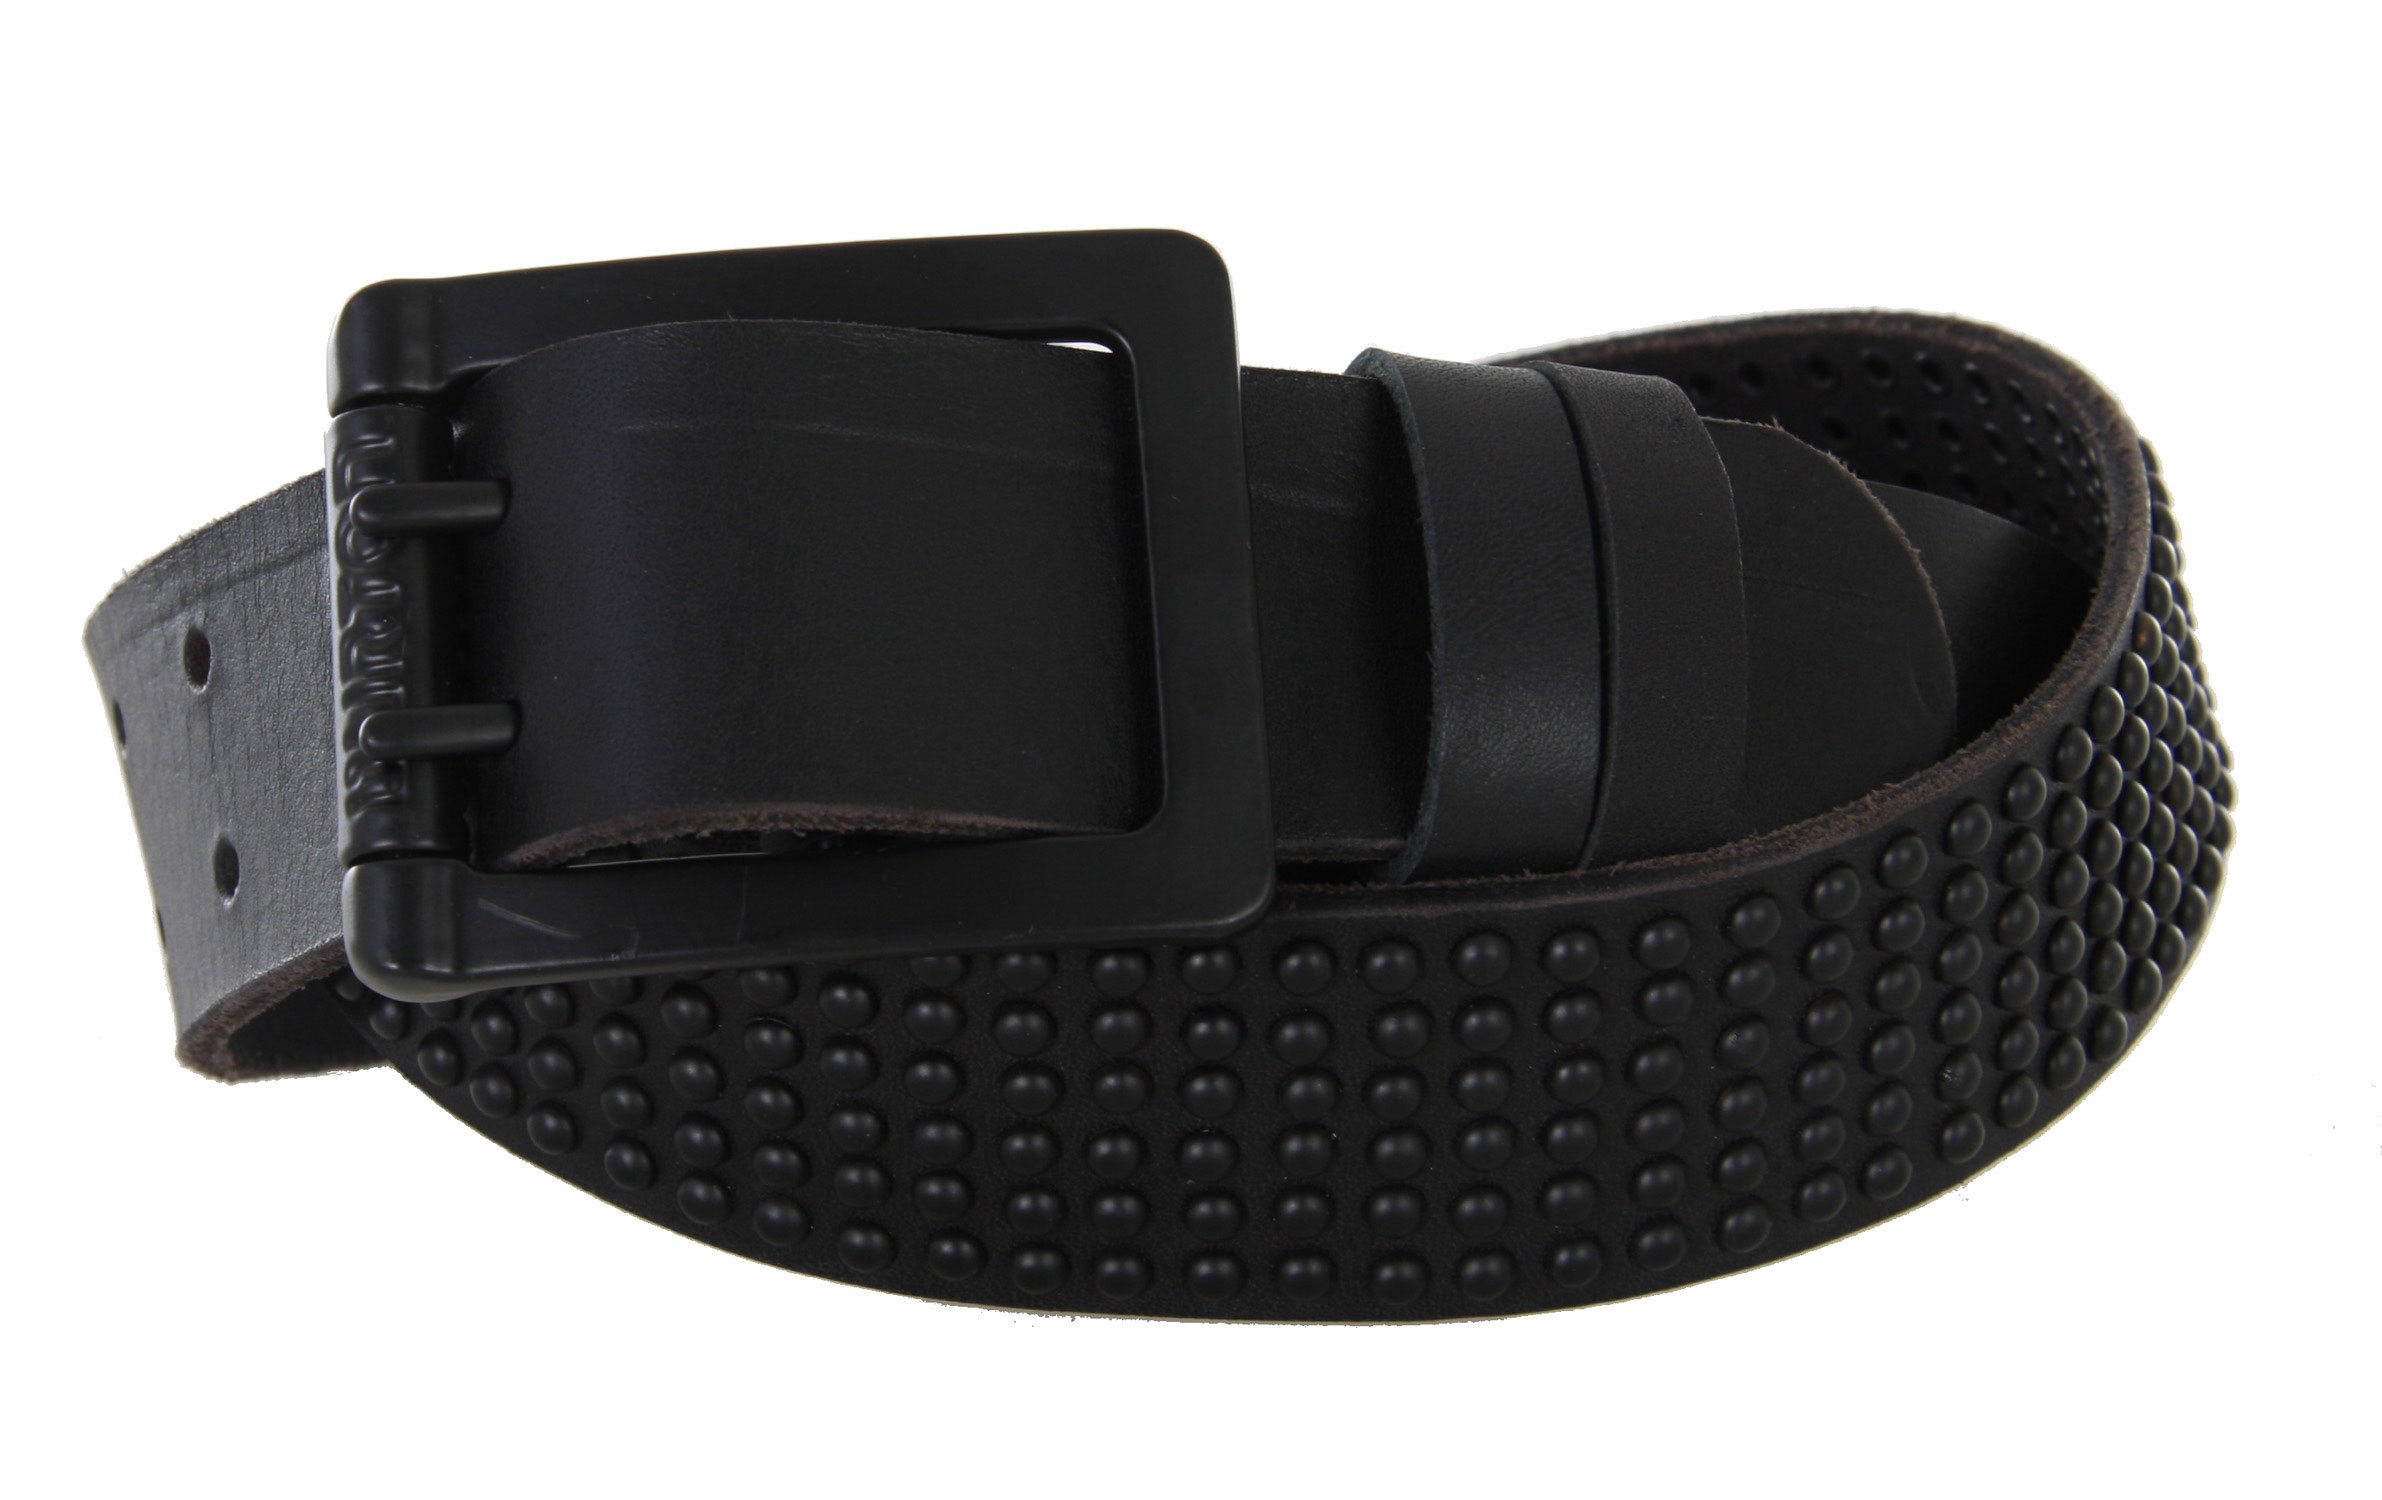 Snowboard The Burton Premium Studded Belt is a great buy. It provides an abundance of comfort, and looks great for use in virtually any setting or situation. As its name implies, it is studded with rivets across its entire elastic body, providing a quality aesthetic that gives it a great feel. The buckle has hints of metal on its buckle, with a metal fabric roll on it that compliments the rest of the belt's design to great effect. Every aspect of the belt works with each other to make a belt of very fine quality.Key Features of the Burton Premium Studded Belt: Full Grain Leather Belt Circular Full Rivet Studs Metal Fabric Roll on Buckle Metal Burton Mountain Logo Trim - $31.46